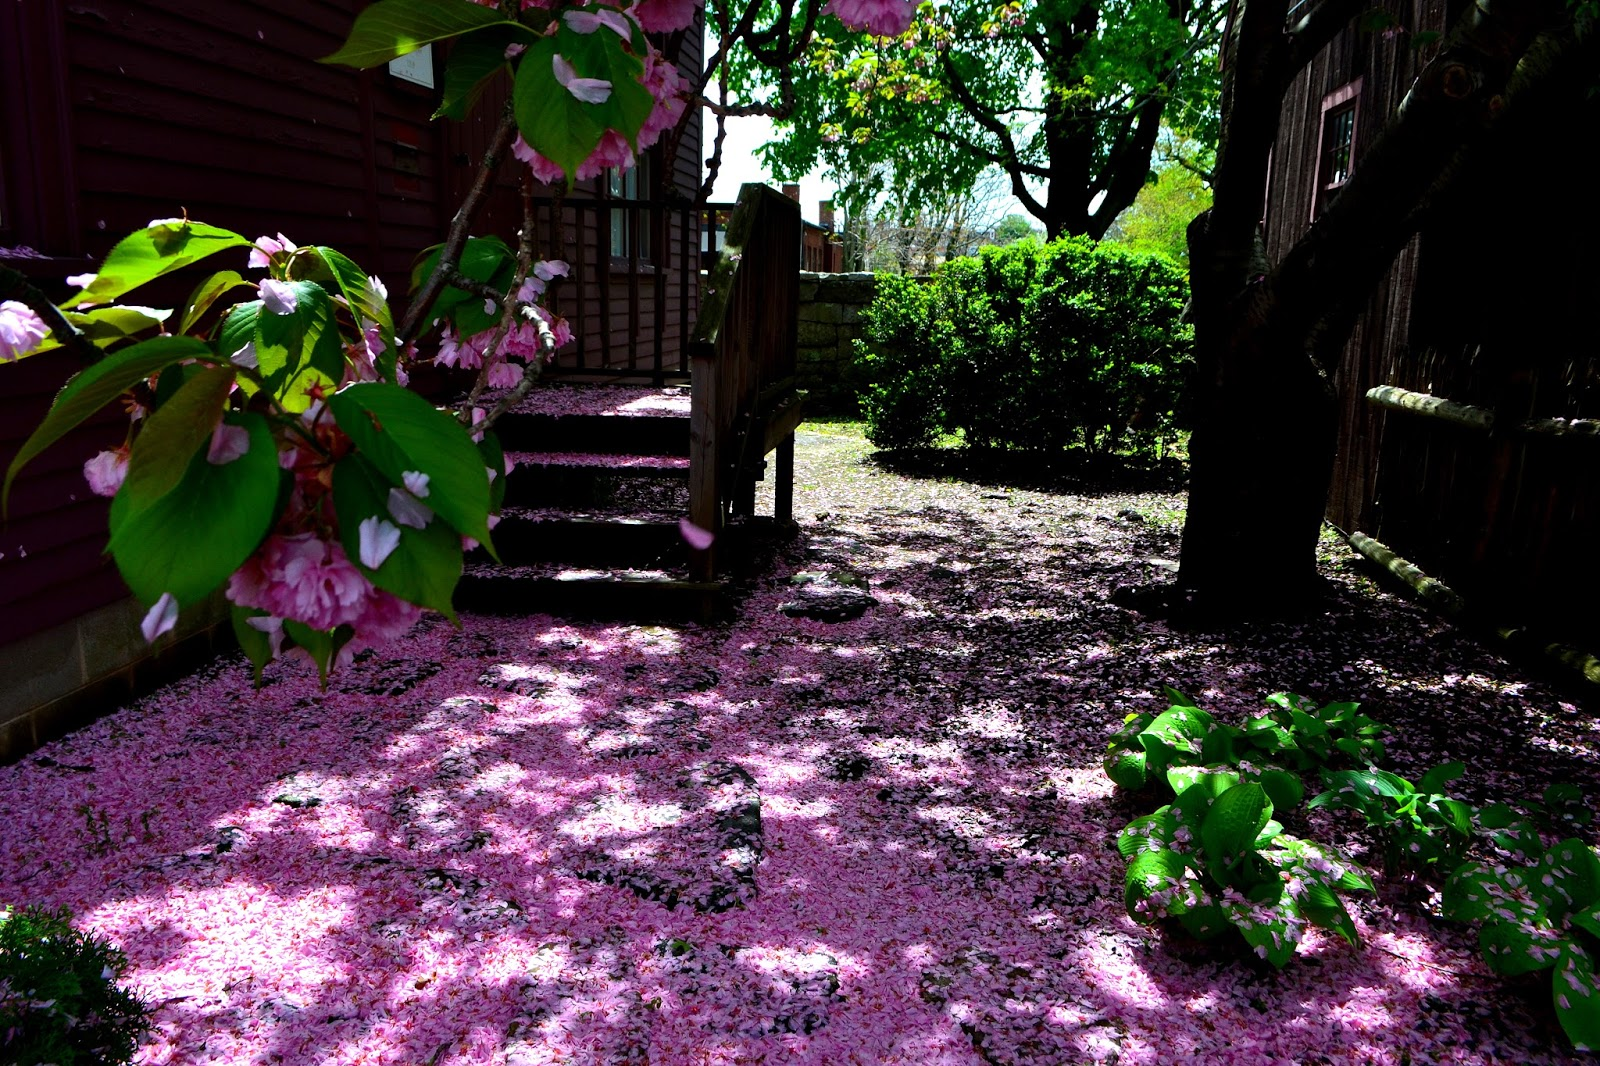 shadow, pink, petals, fallen, crabapple, salem